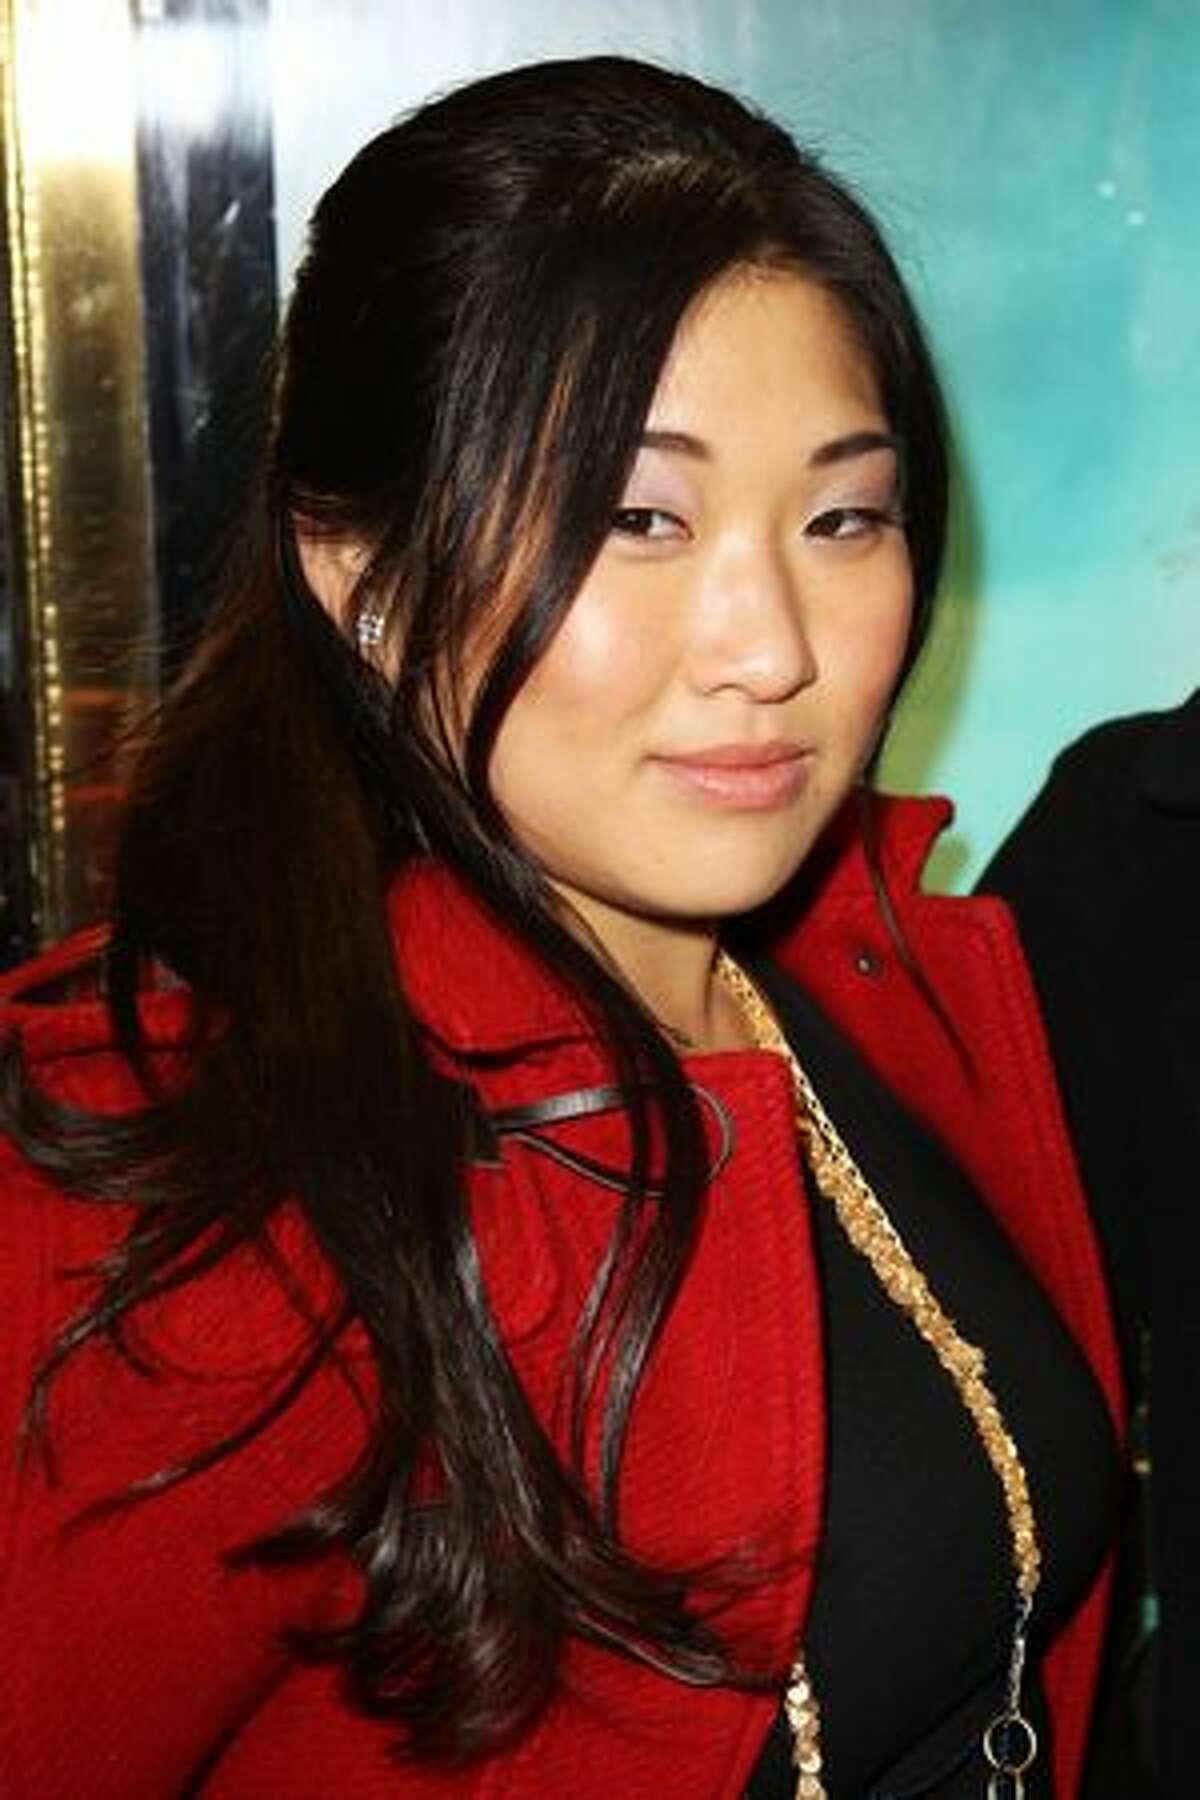 Jenna Ushkowitz attends the UK premiere of Tron: Legacy held at The Empire Leicester Square in London, England.